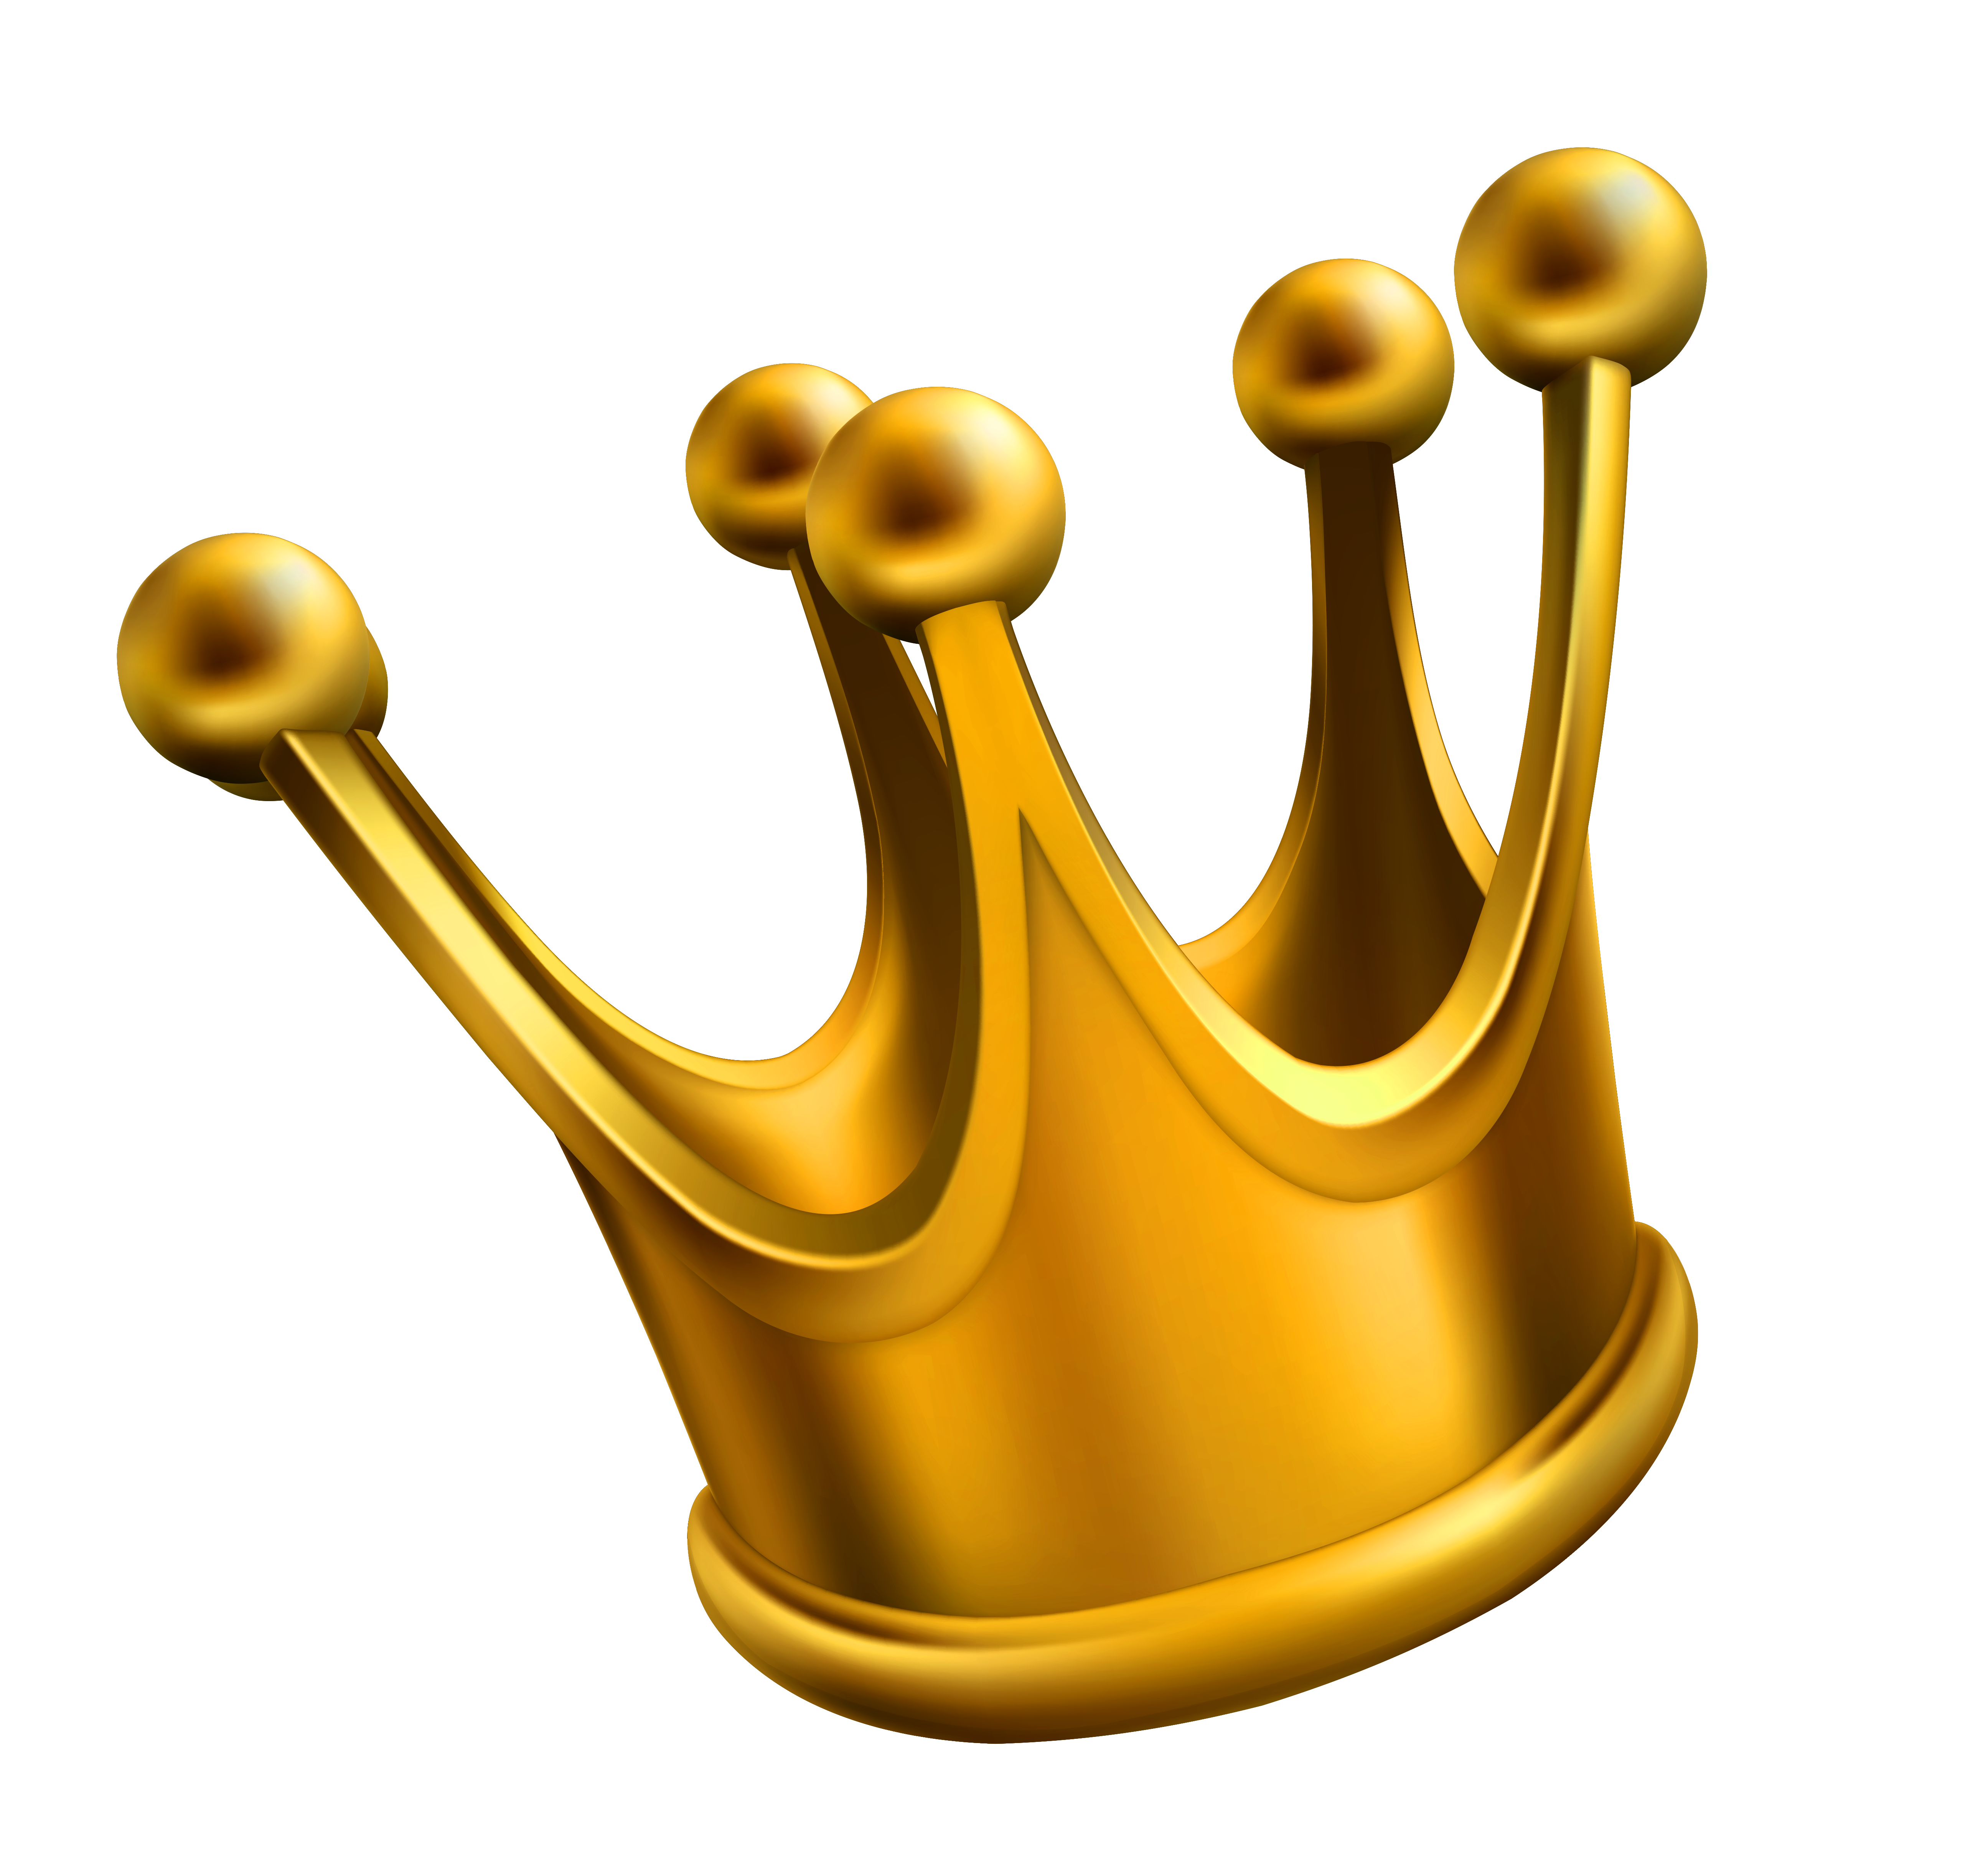 Crown clip art clear background. Golden png clipart picture